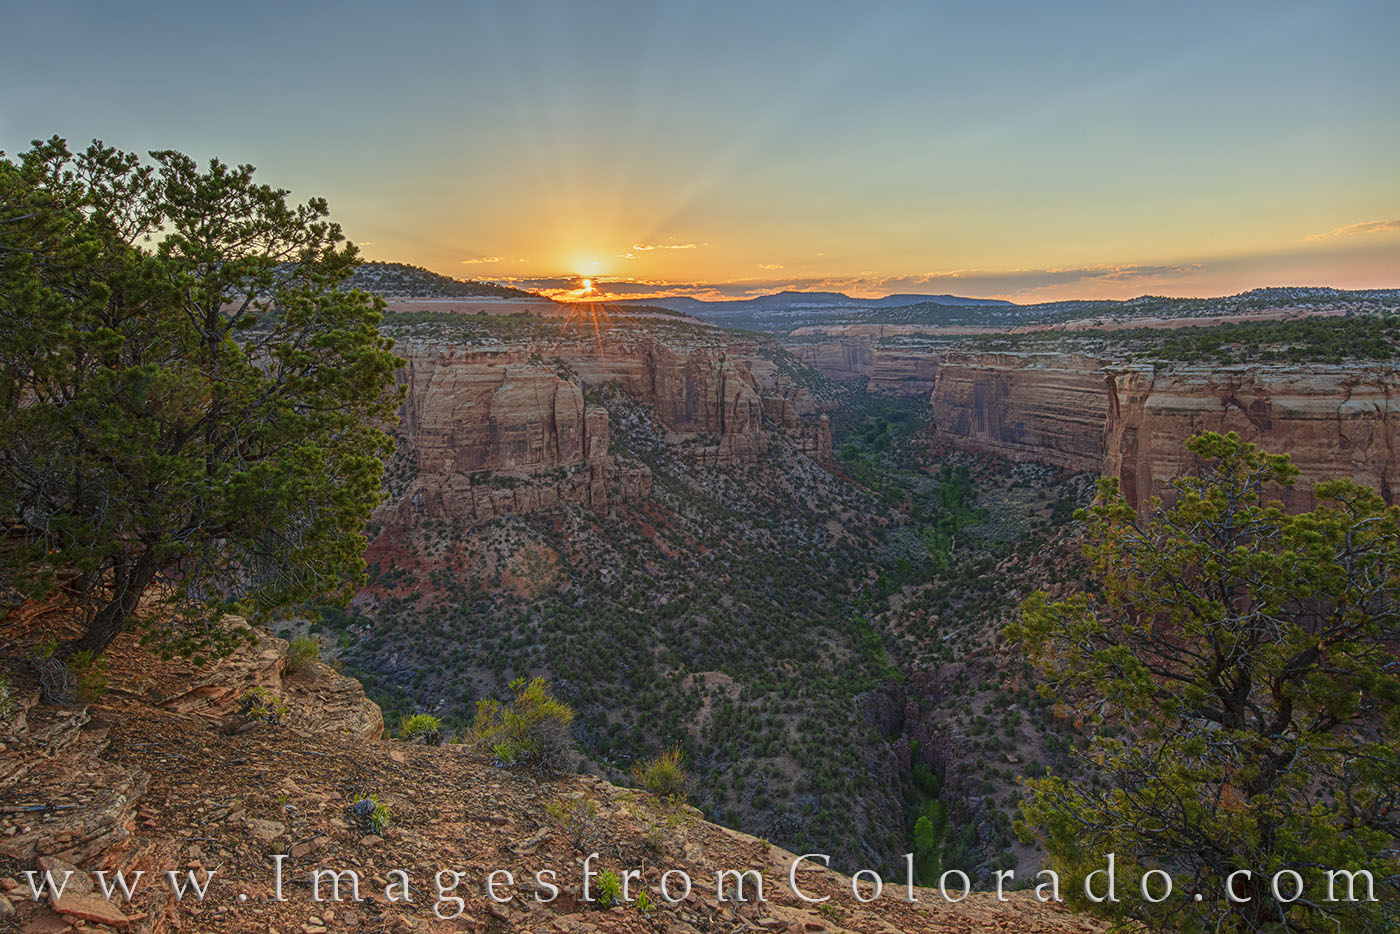 Ute Canyon, Colorado National Monument, sunset, rim rock road, grand junction, colorado national parks, canyon, valley, evening, sunrays, summer, photo